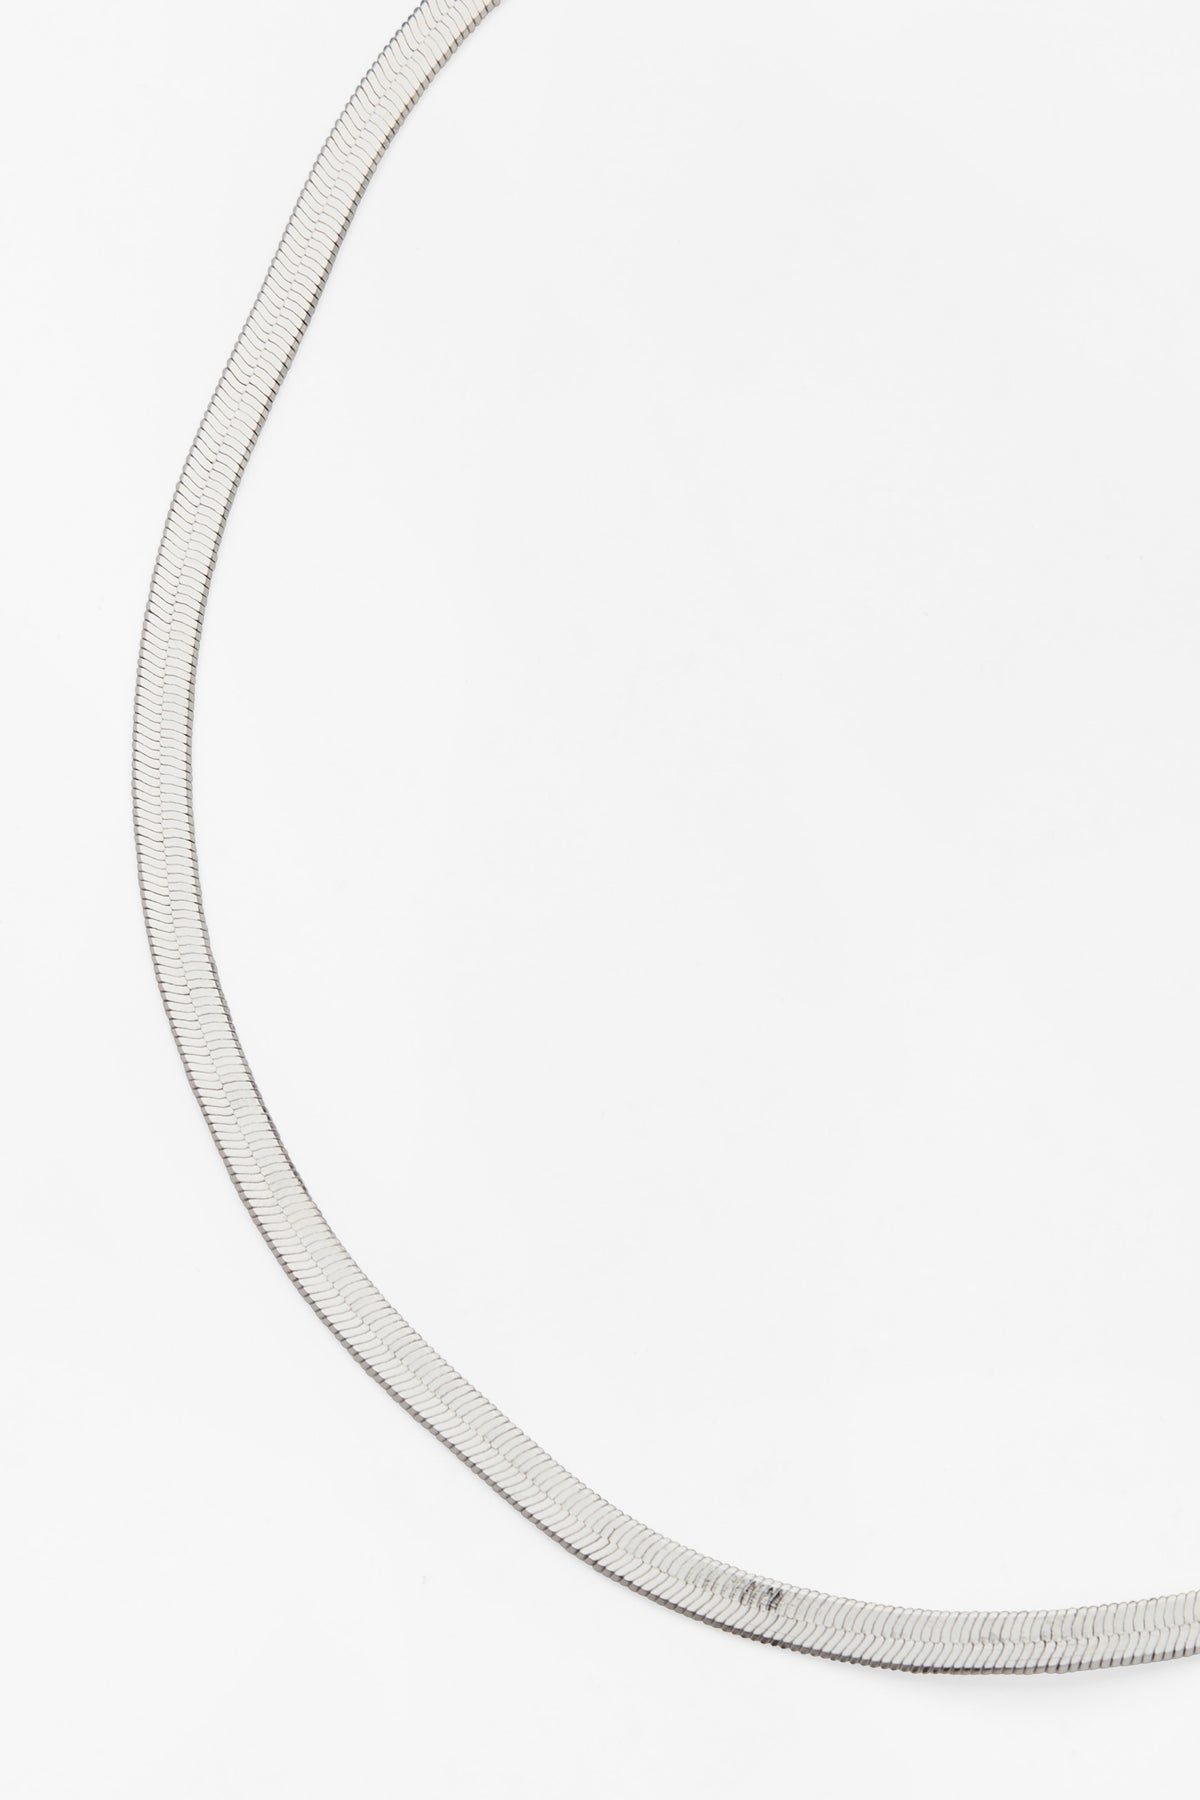 Halley Necklace in Silver